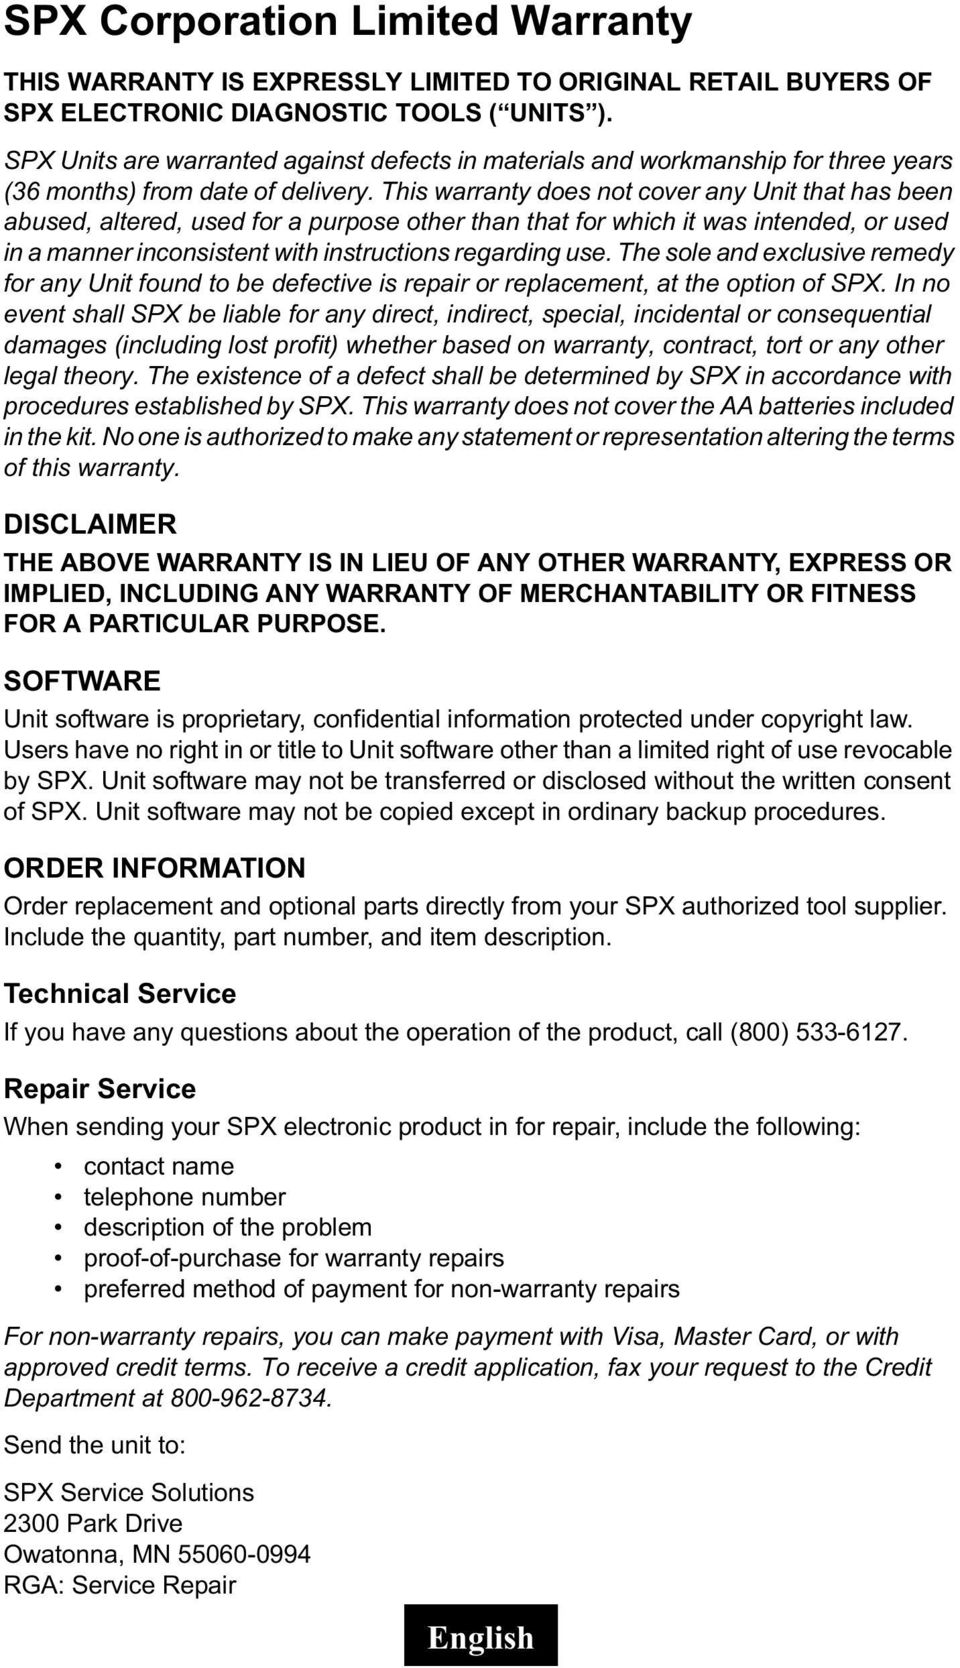 This warranty does not cover any Unit that has been abused, altered, used for a purpose other than that for which it was intended, or used in a manner inconsistent with instructions regarding use.